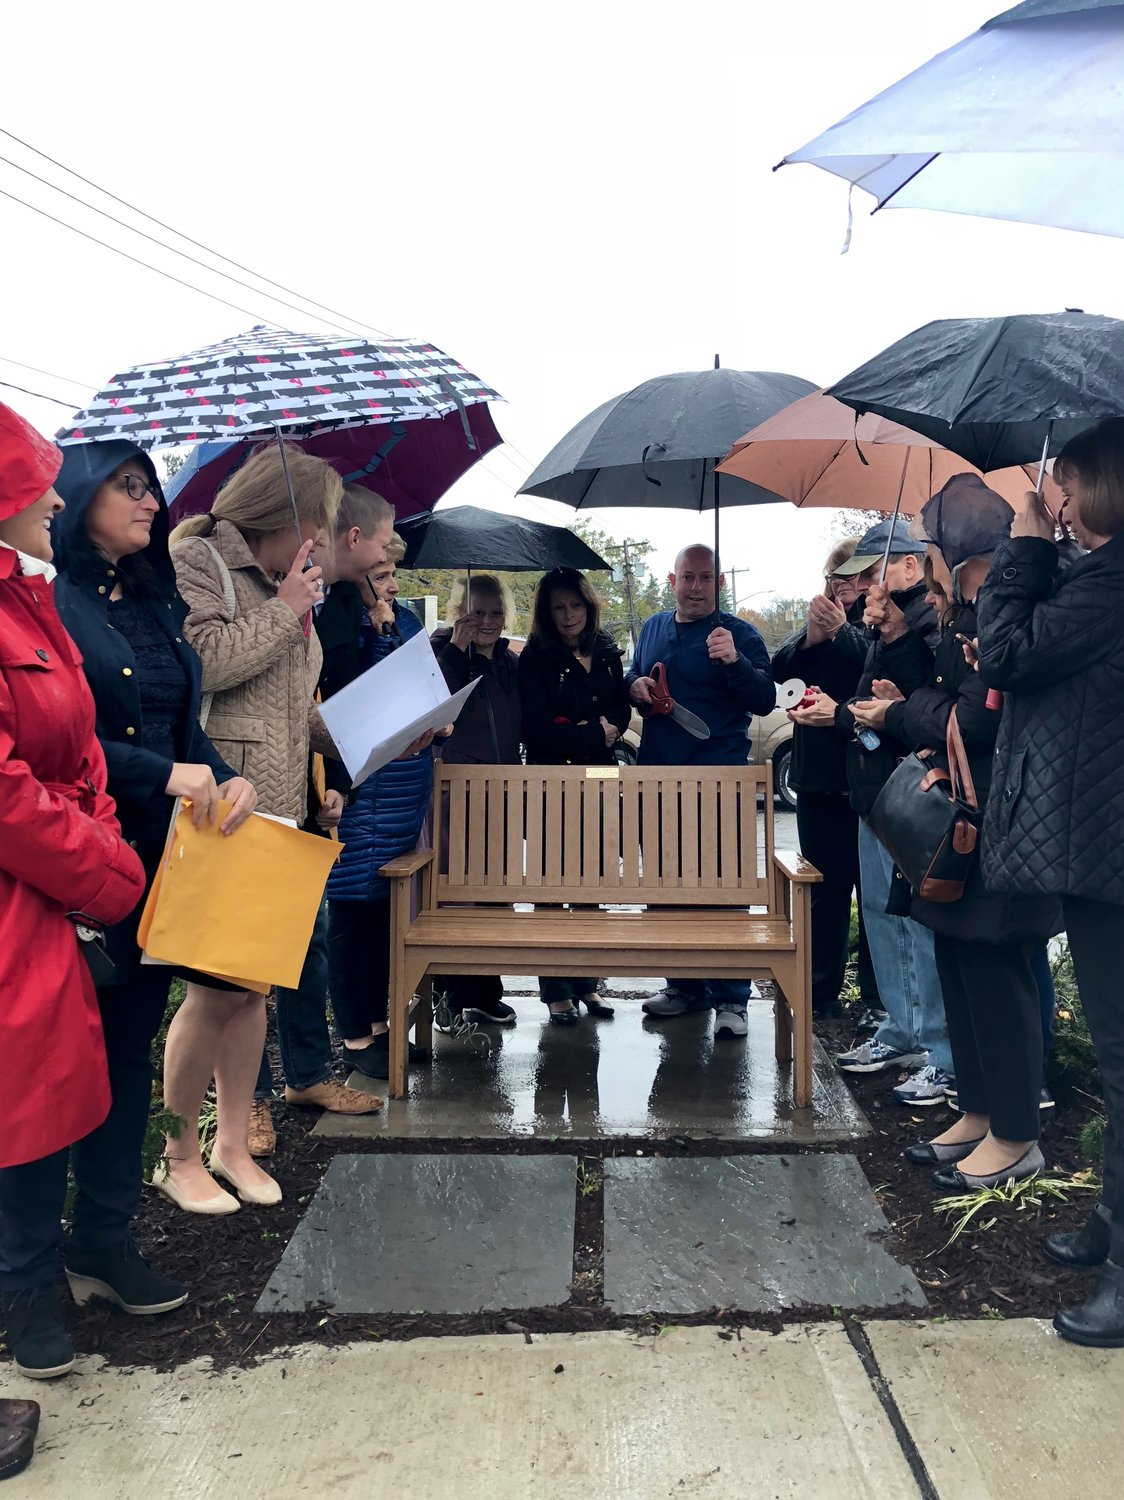 The Gonder family, center, were present during the Gold Coast Business Association's bench dedication on Monday. The bench is dedicated in memory of former local business owner Charles Gonder.